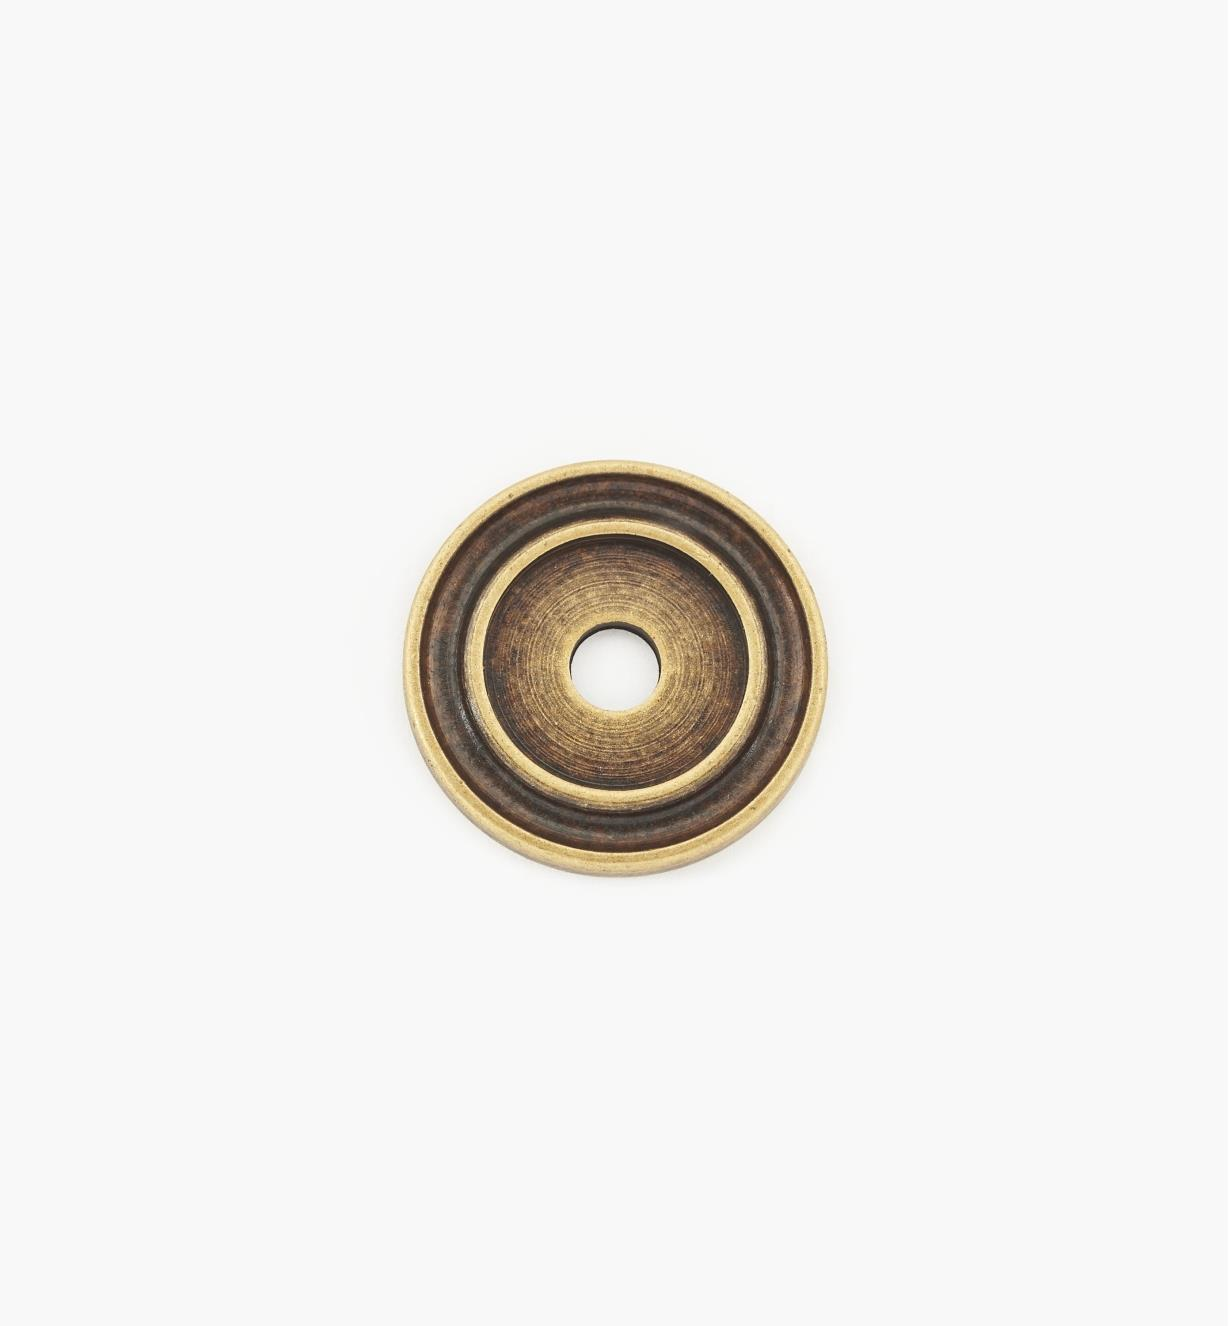 01A0720 - 20mm Antique Brass Knob Escutcheon